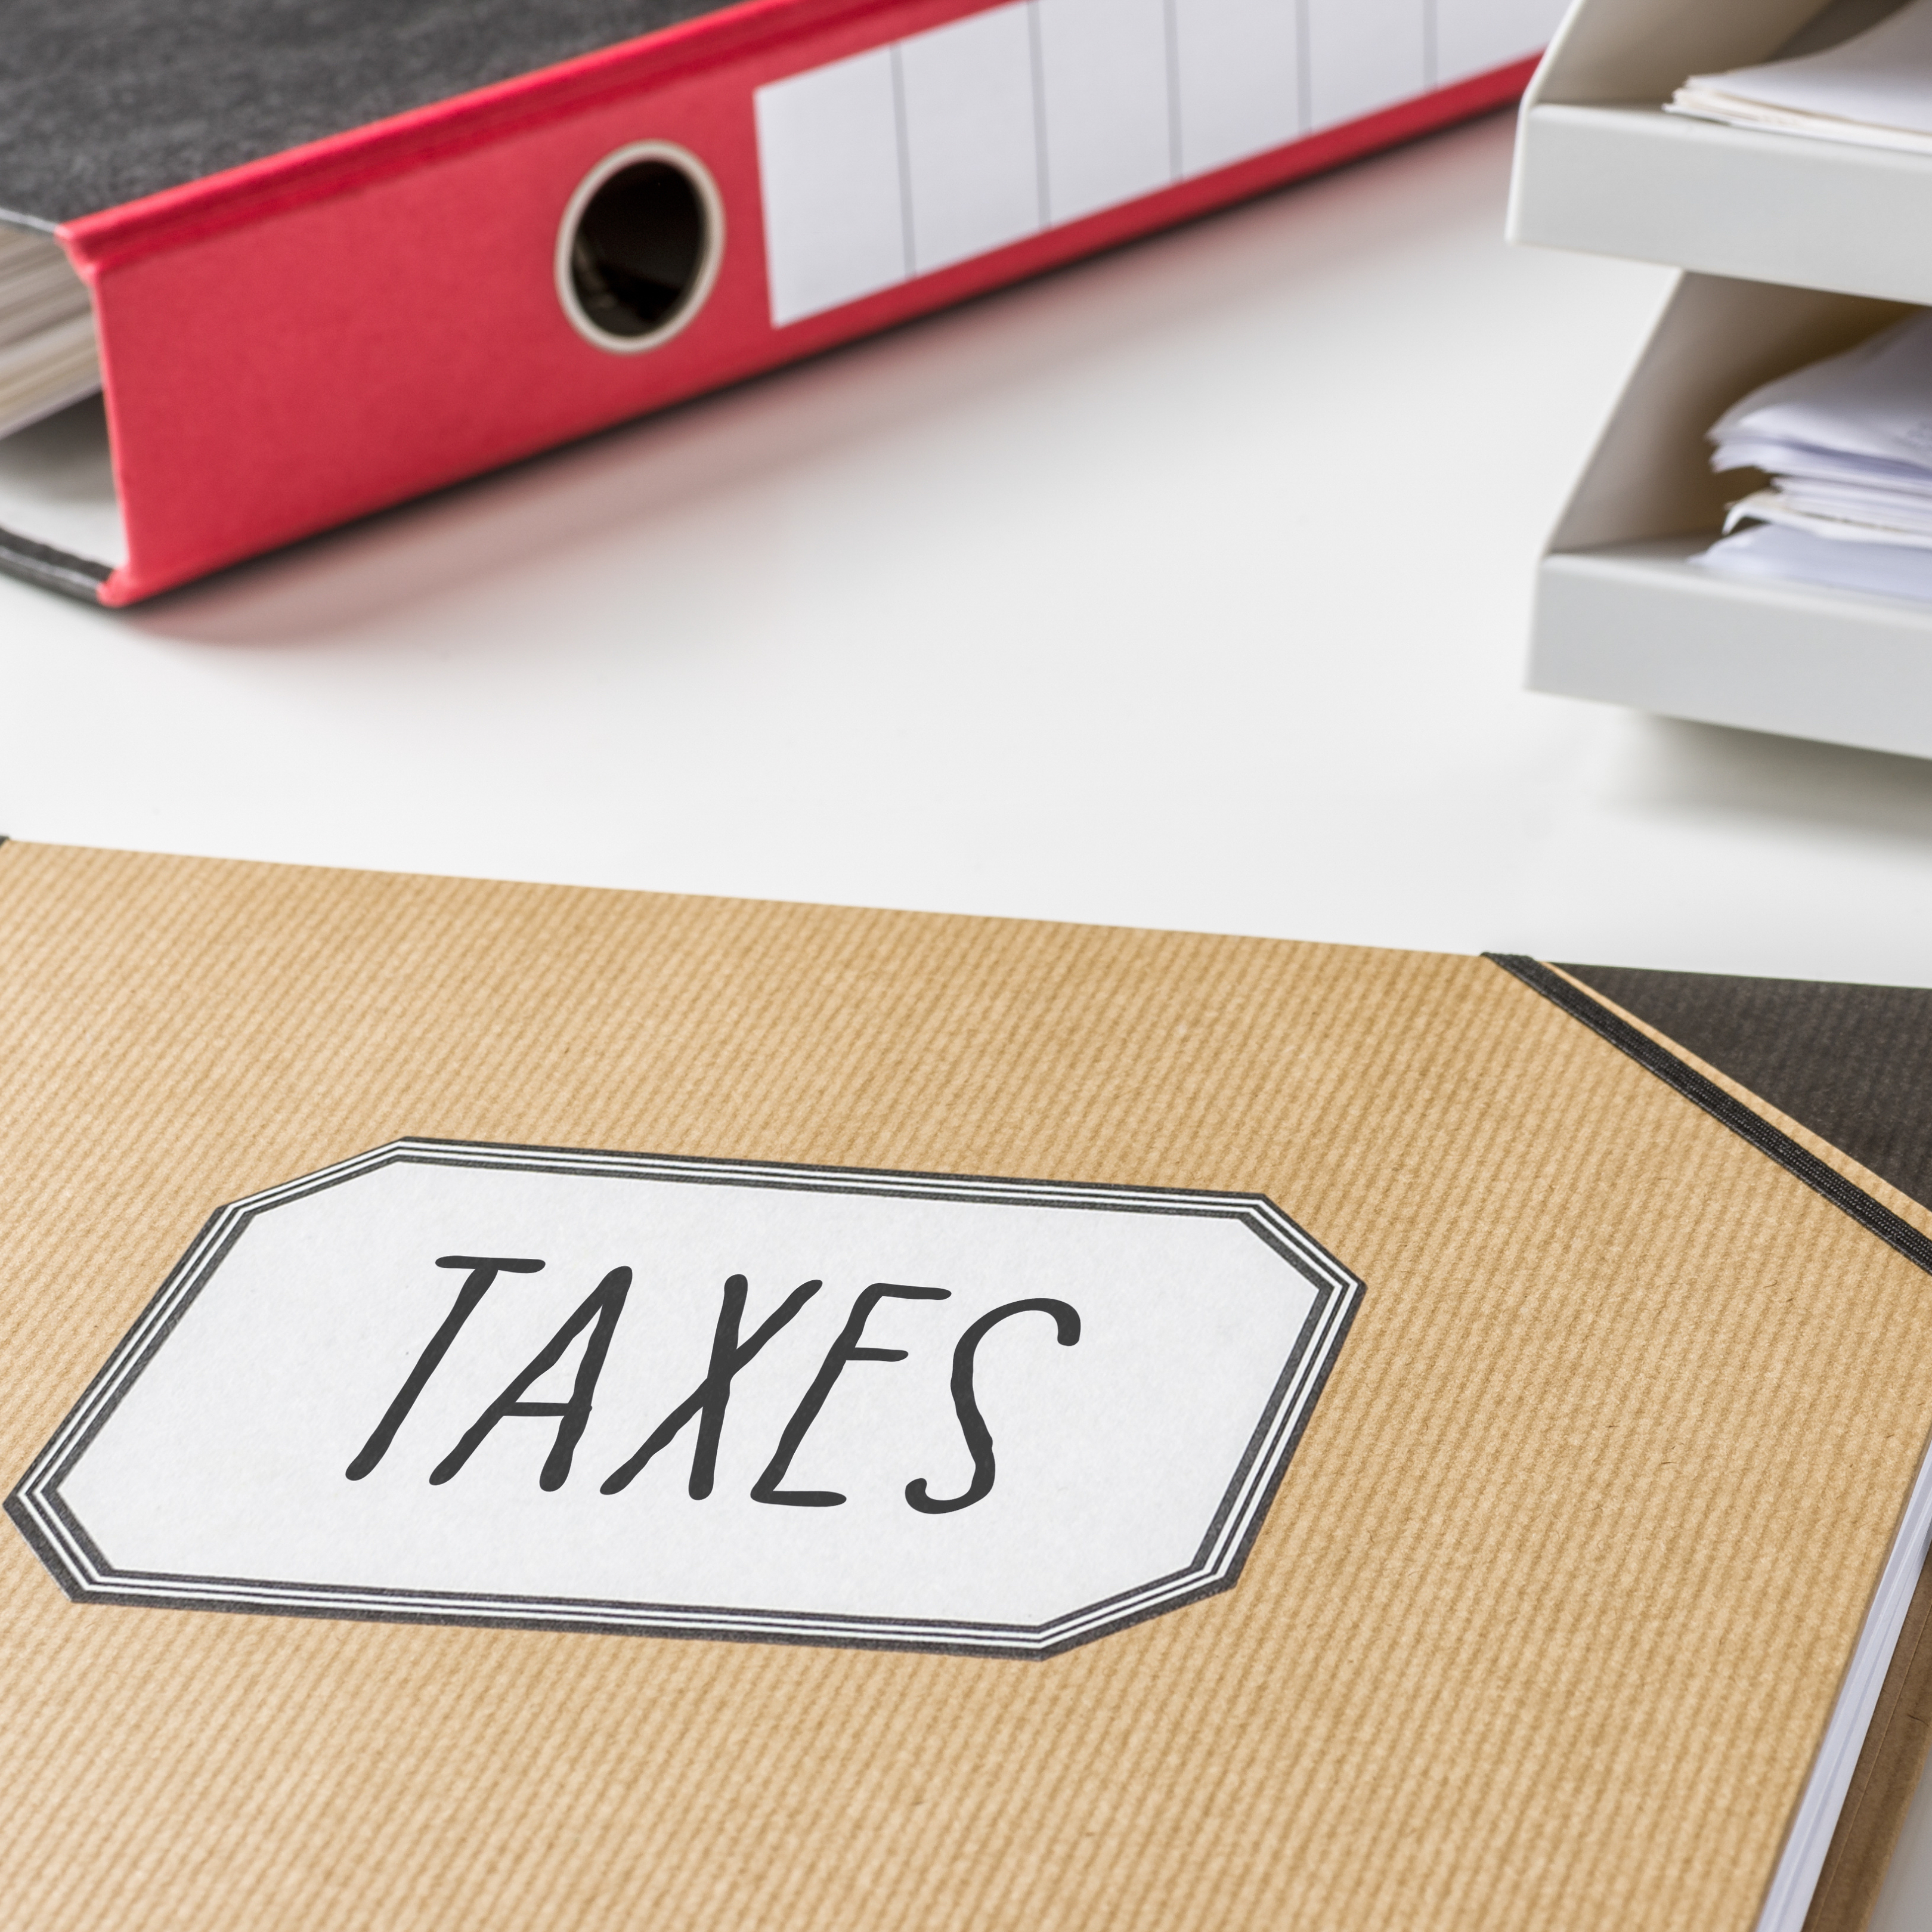 Top tips for tax